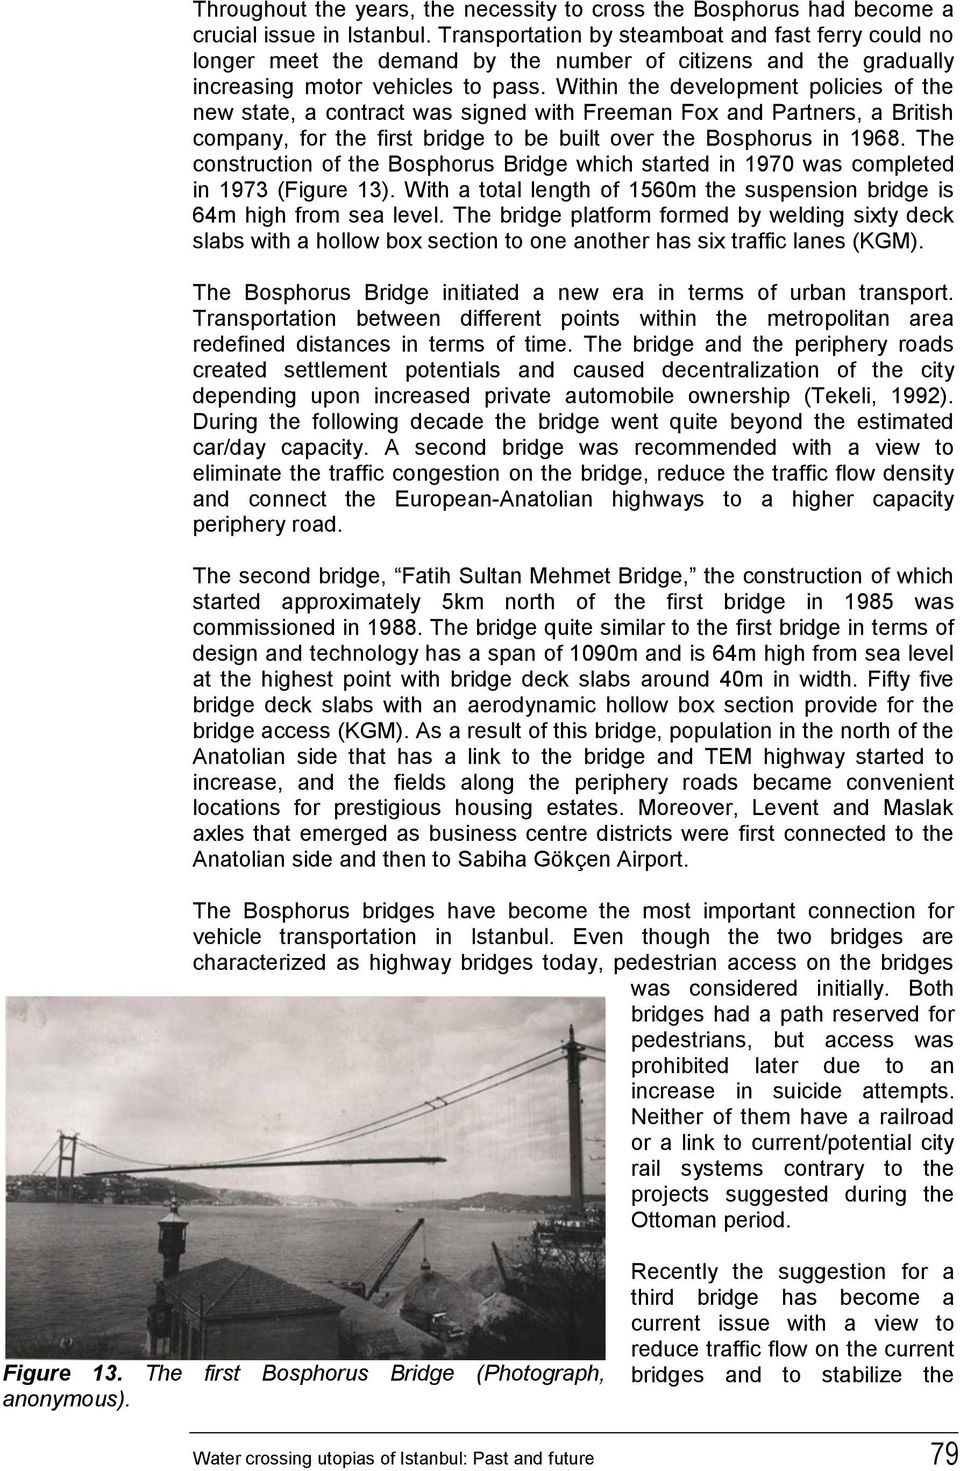 Within the development policies of the new state, a contract was signed with Freeman Fox and Partners, a British company, for the first bridge to be built over the Bosphorus in 1968.